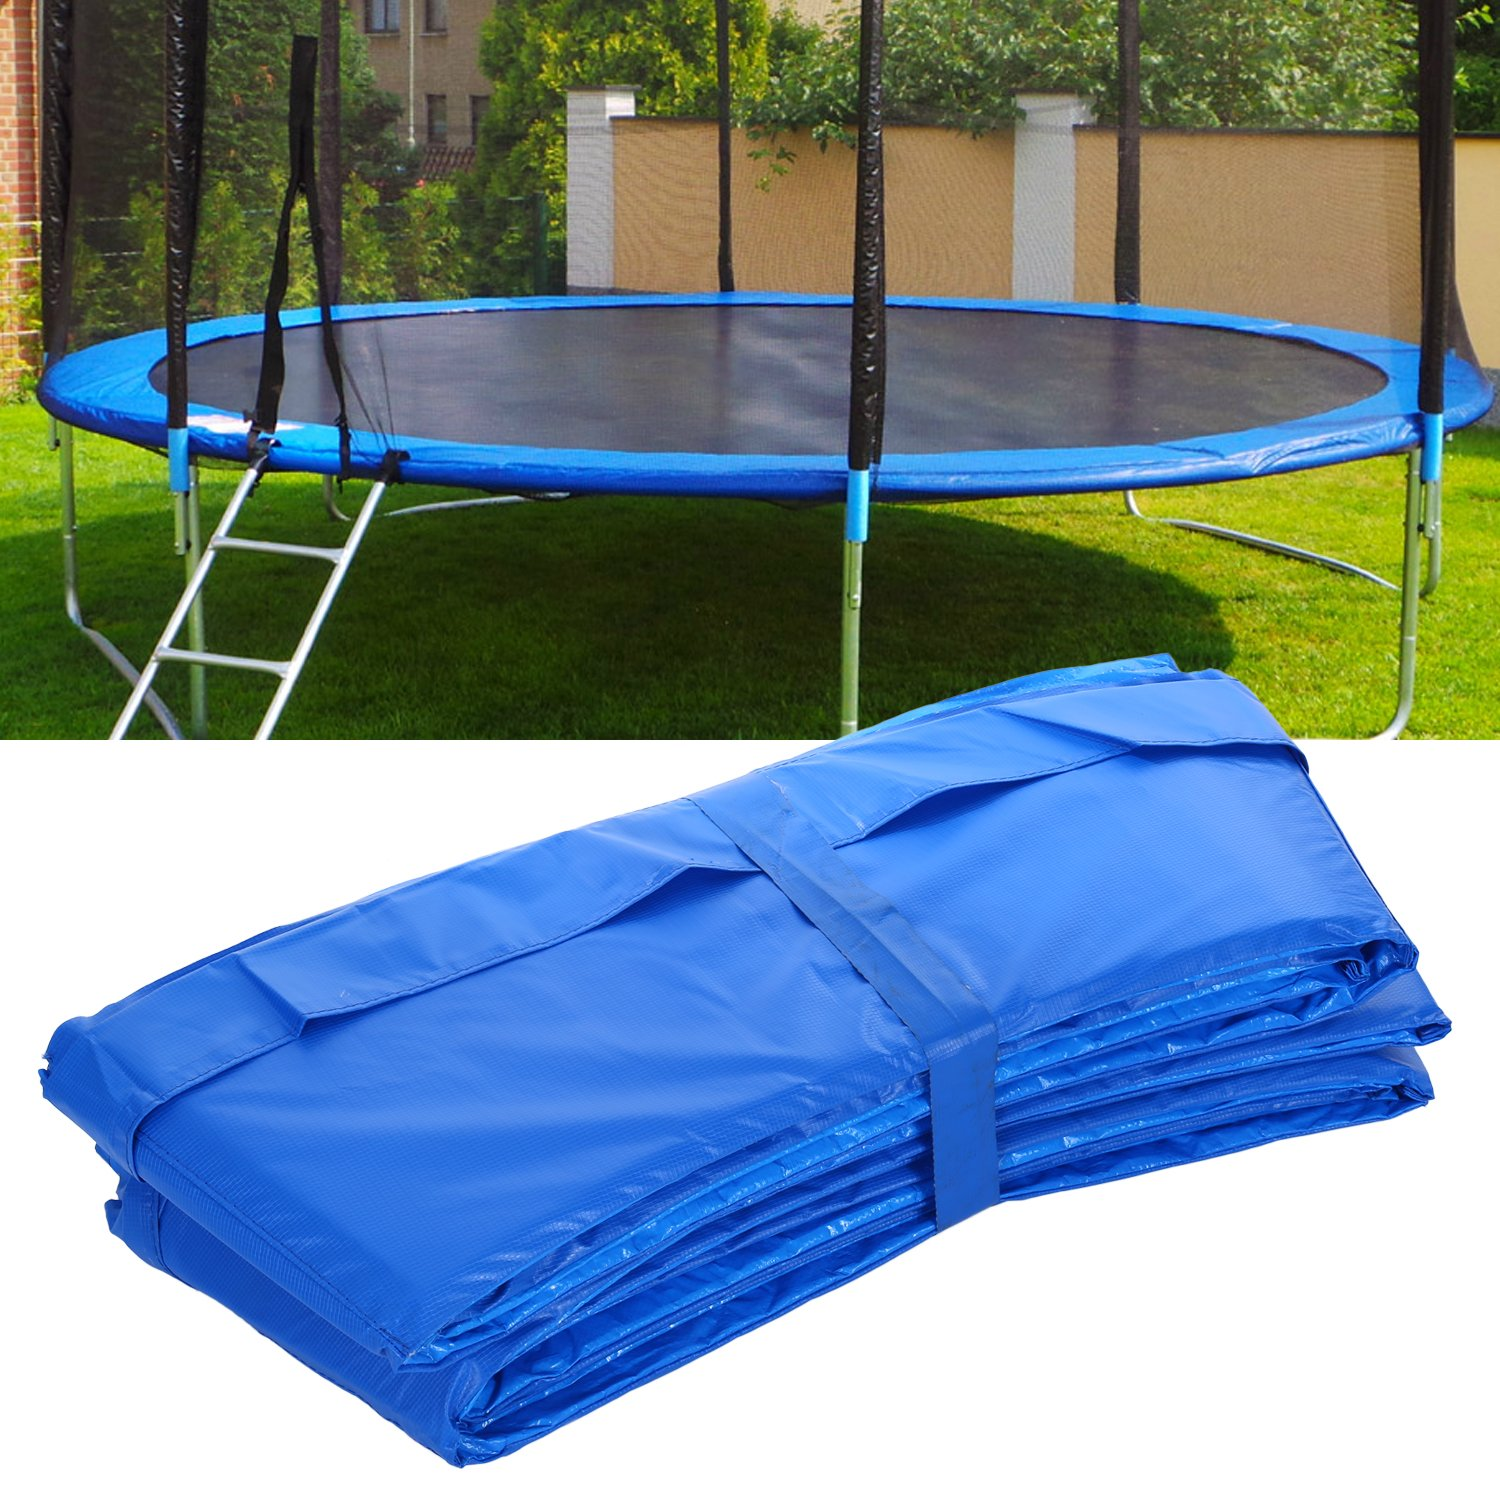 15 14 12 10 Ft Replacement Trampoline Surround PVC Pad Foam Safety Spring Cover Padding Pads (Blue, 15 Ft) by Zafuar Sports (Image #7)